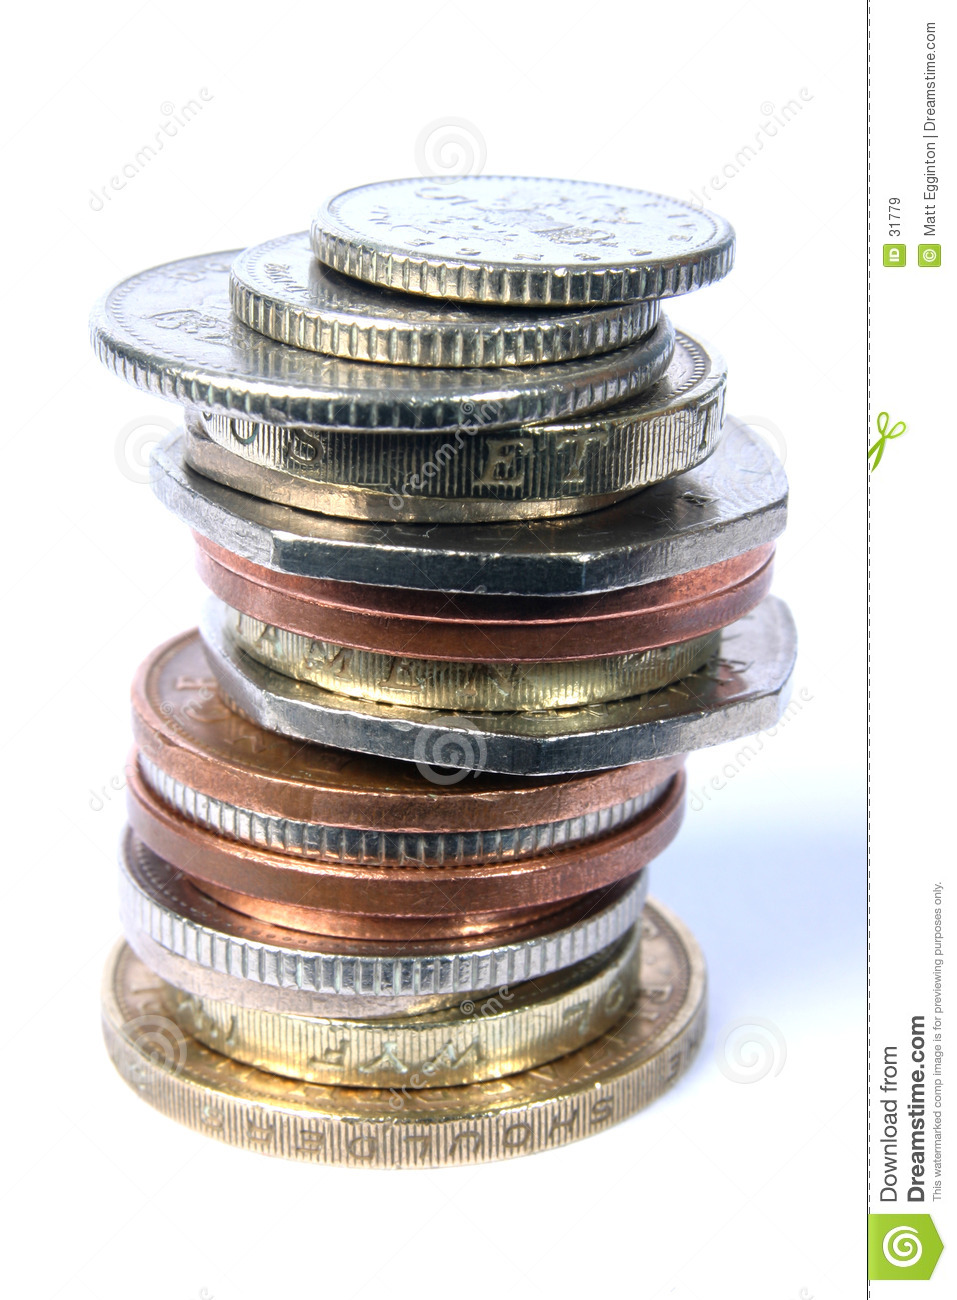 UK Mixed Coin stack